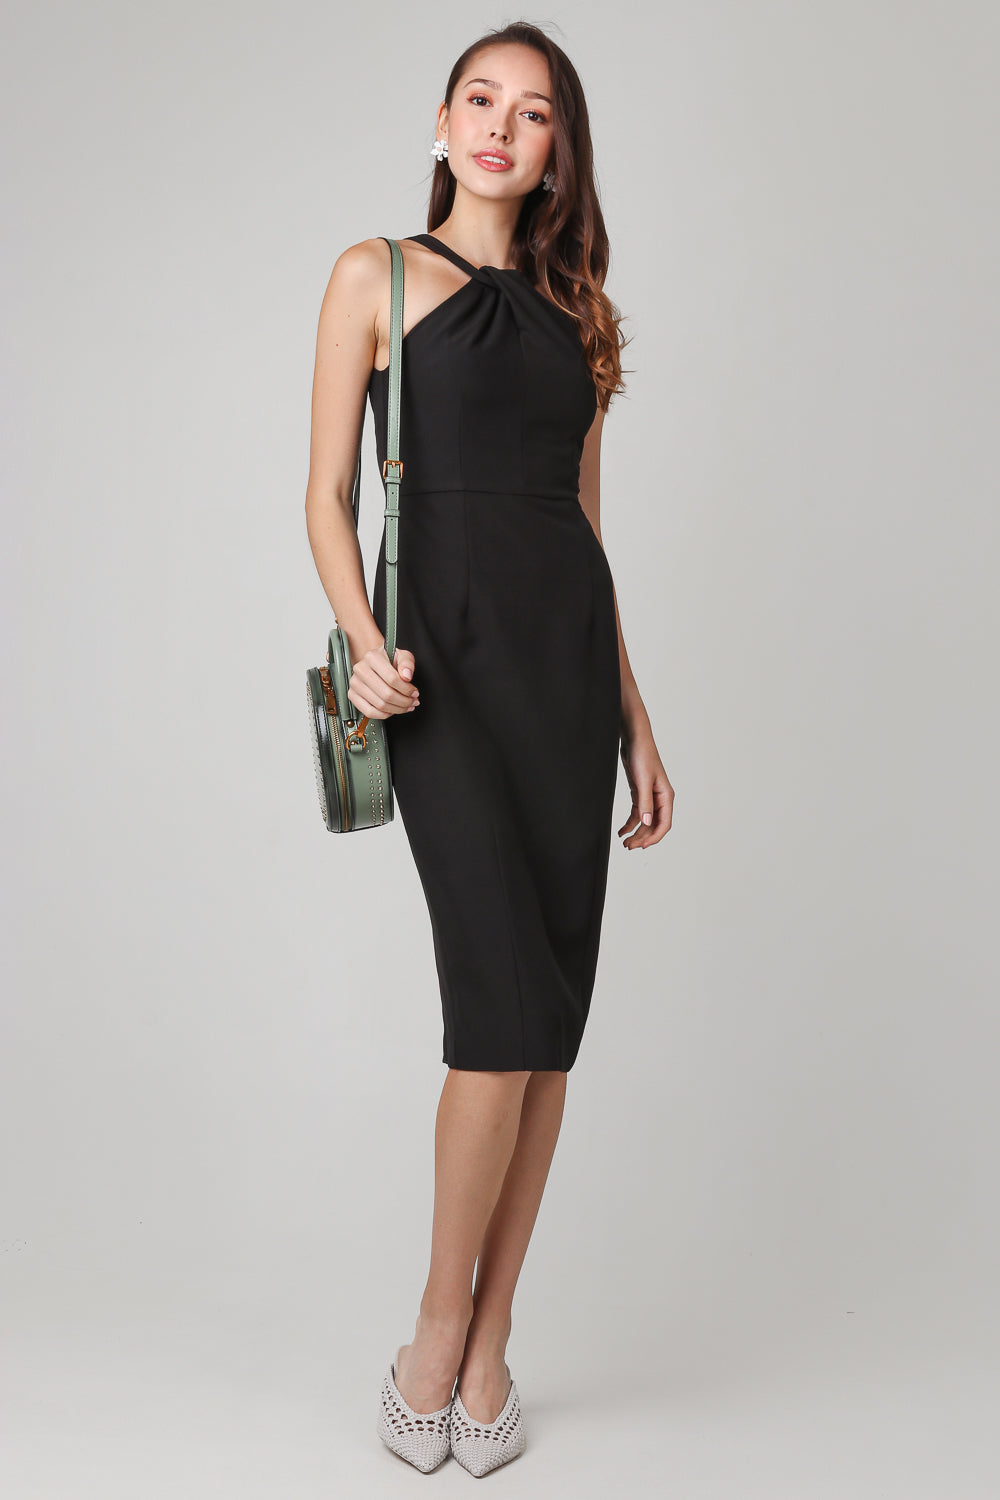 Top Of The World Halter Dress in Black